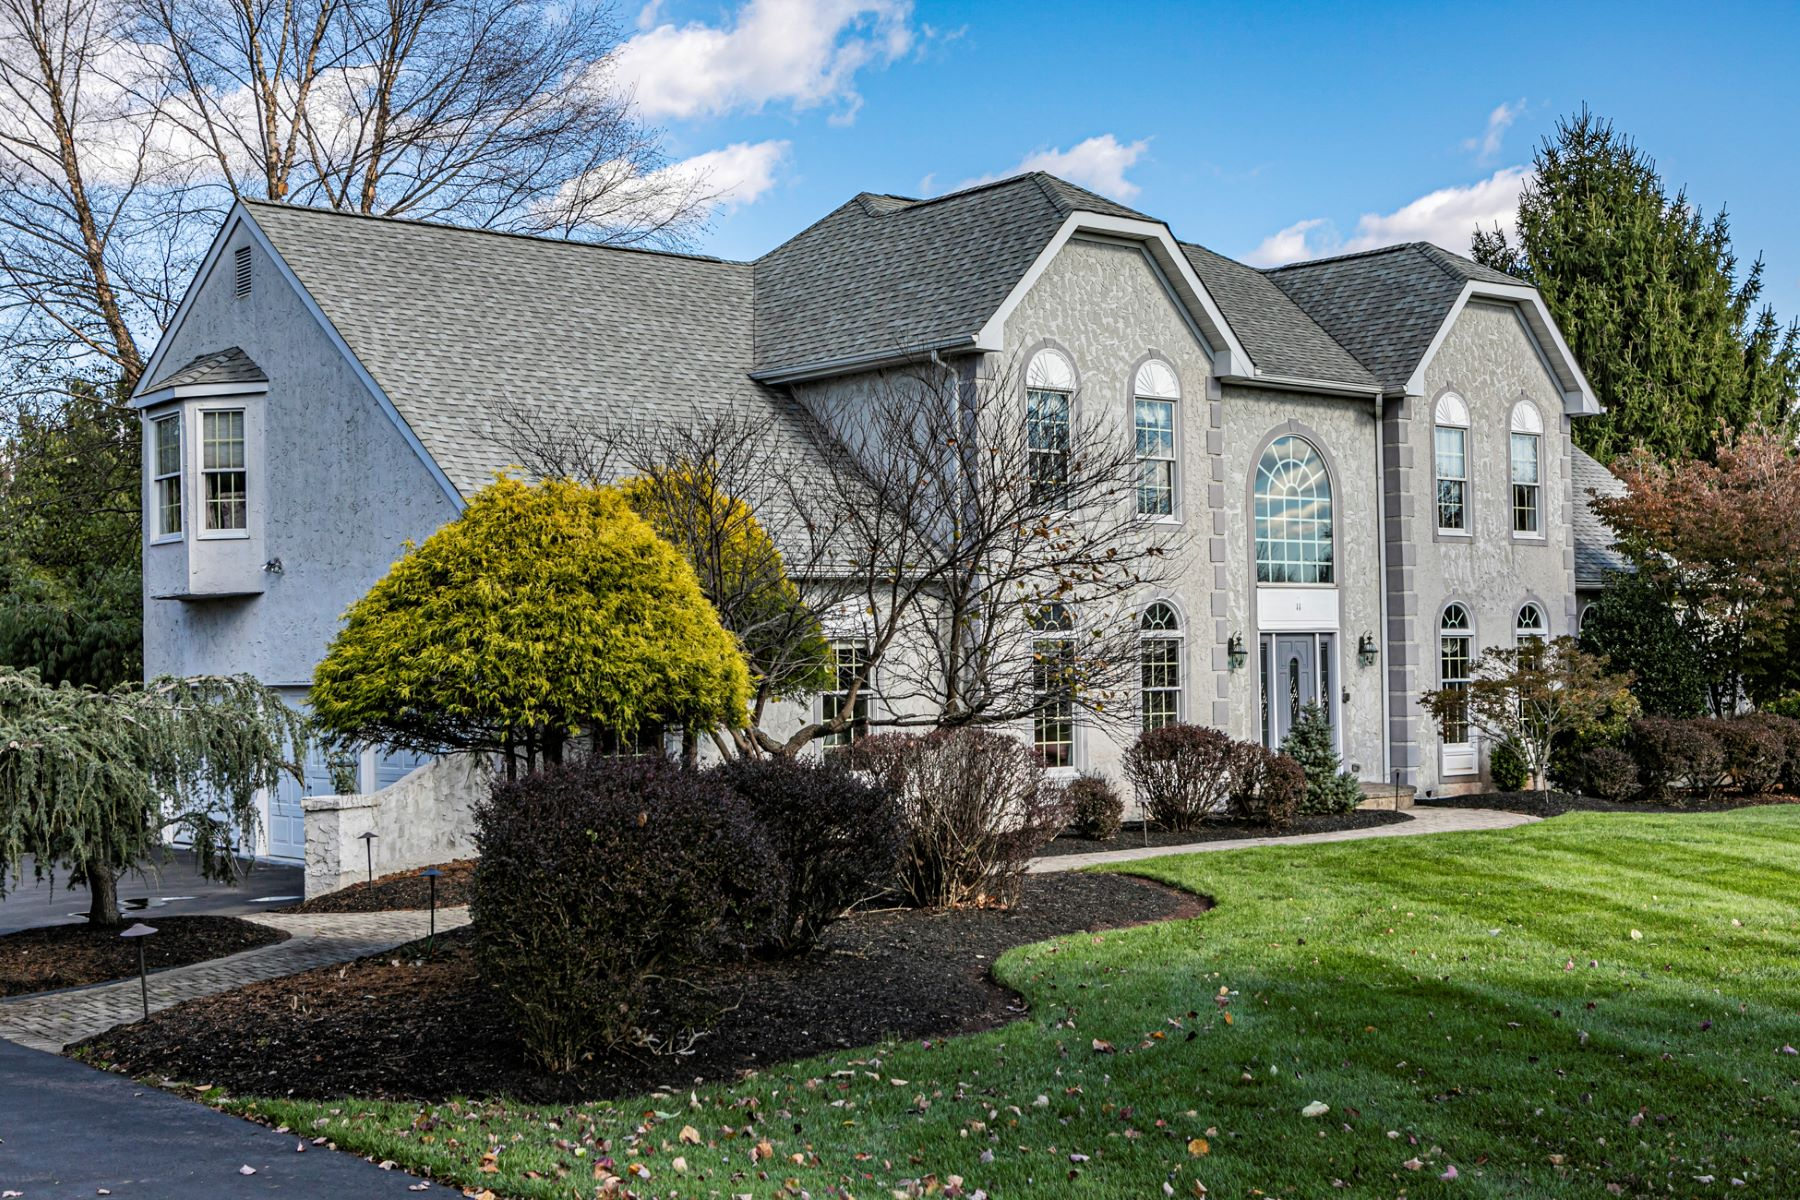 Additional photo for property listing at Beautiful Home, Upgrades, And Location 11 Mulberry Court, Belle Mead, New Jersey 08502 United States